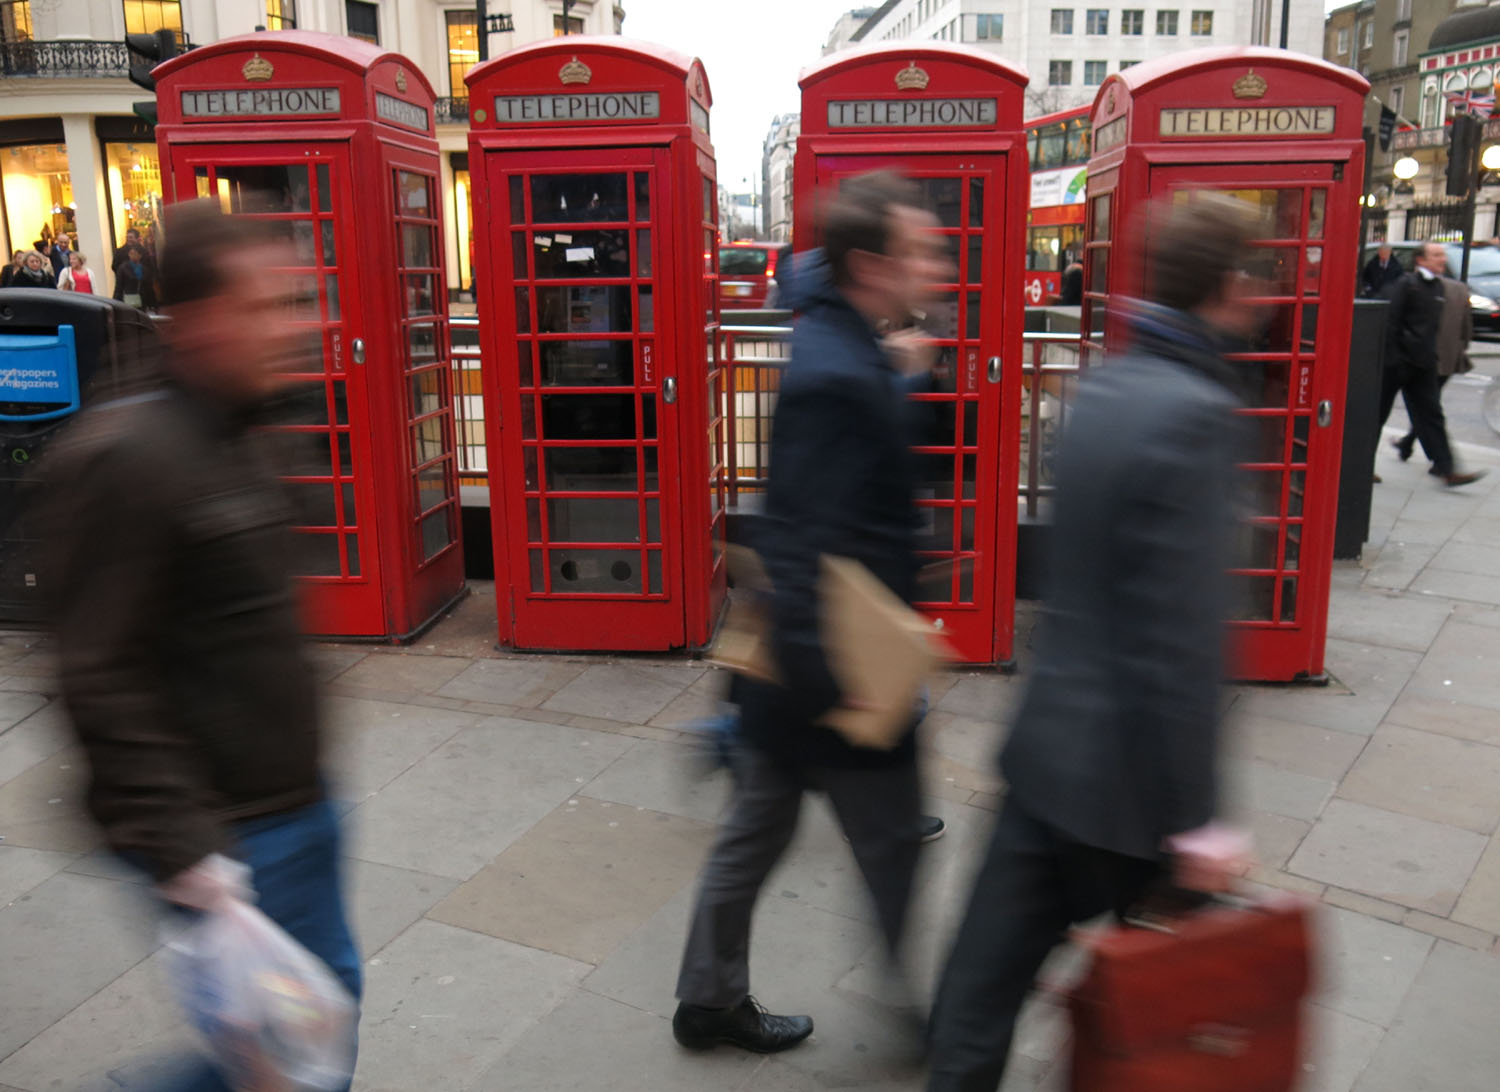 England-London-Street-Scenes-Telephone-Booths